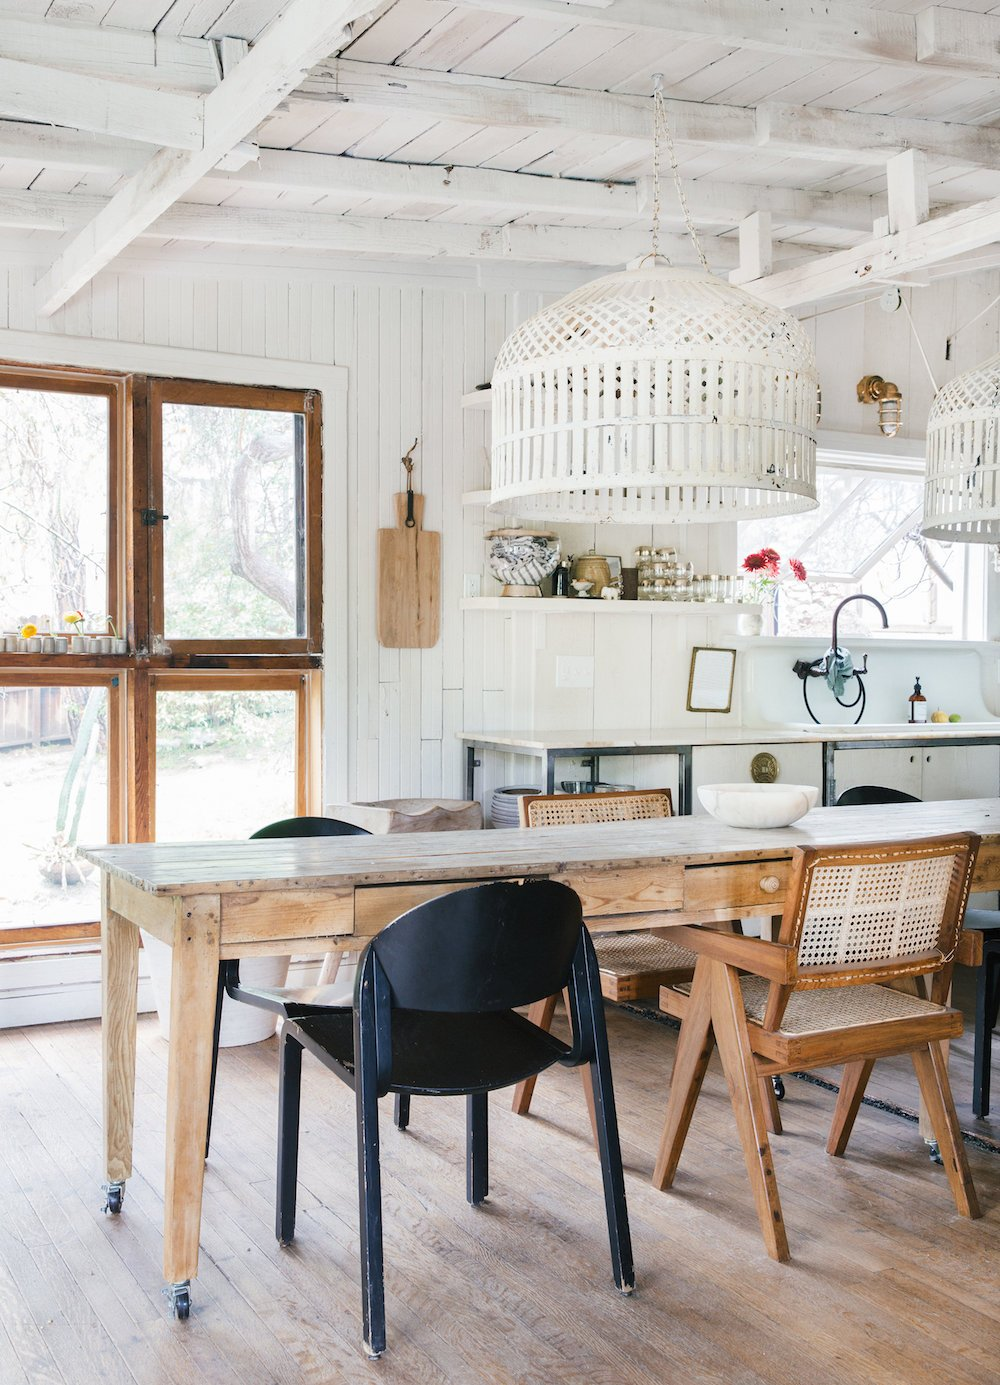 design-dining-space-tips-forthehome-013.jpg